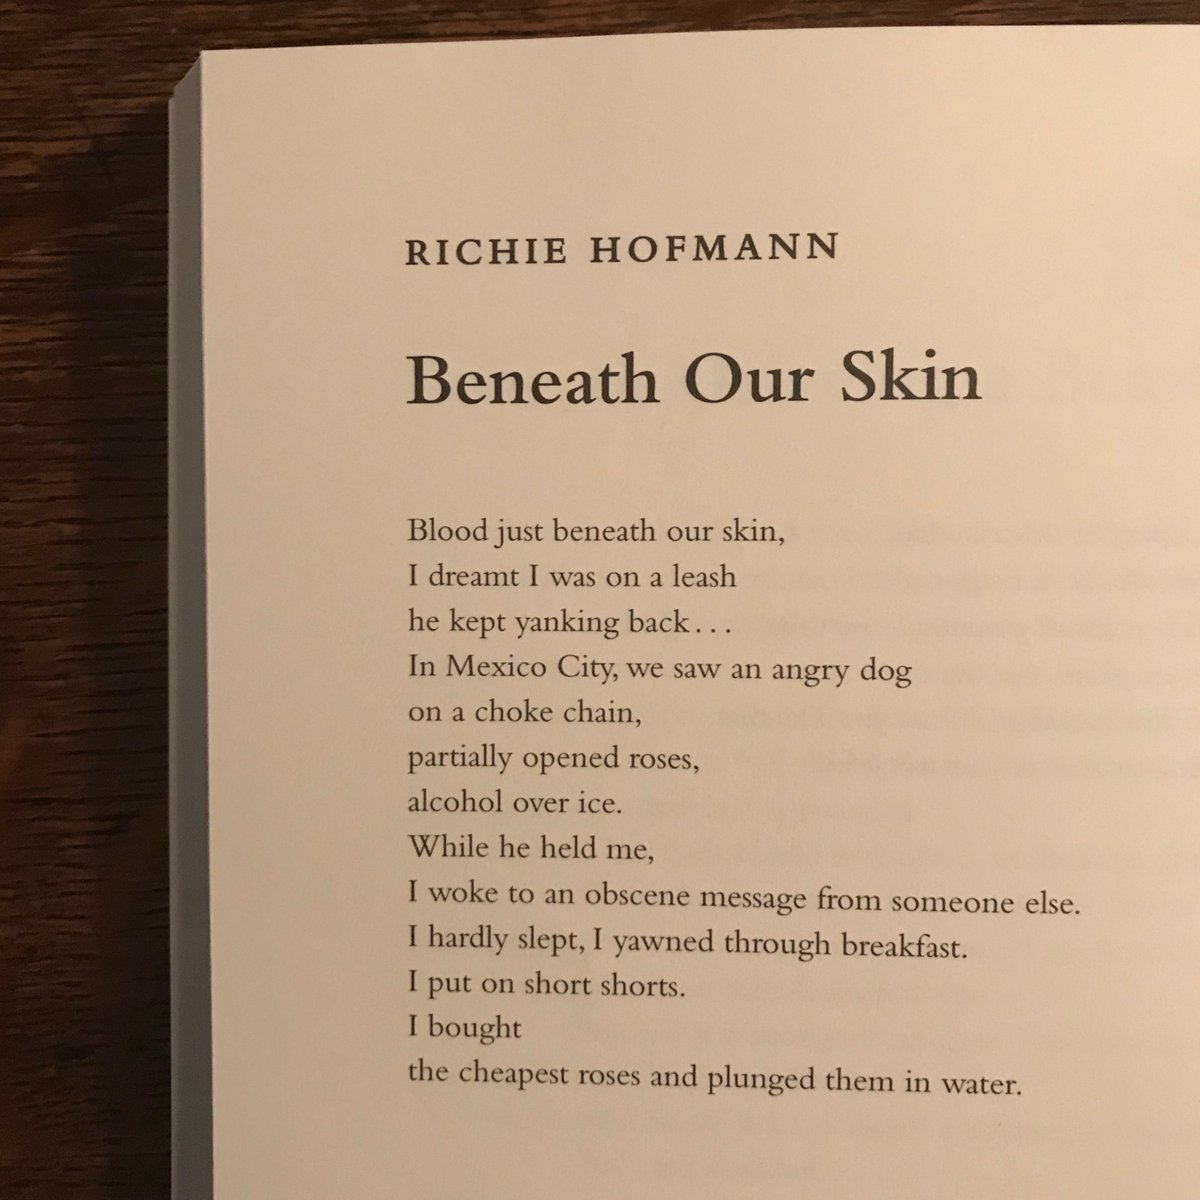 Richie Hofmann On Twitter My Latest Poem Beneath Our Skin Is Now Out In The 60th Anniversary Issue Of Massreview Be Sure To Get Your Subscription At Https T Co Zq8zn8dyz4 And Celebrate Sixty Years The short poems collection from the writers at my word wizard proves that you can say it all in an economical fashion. richie hofmann on twitter my latest